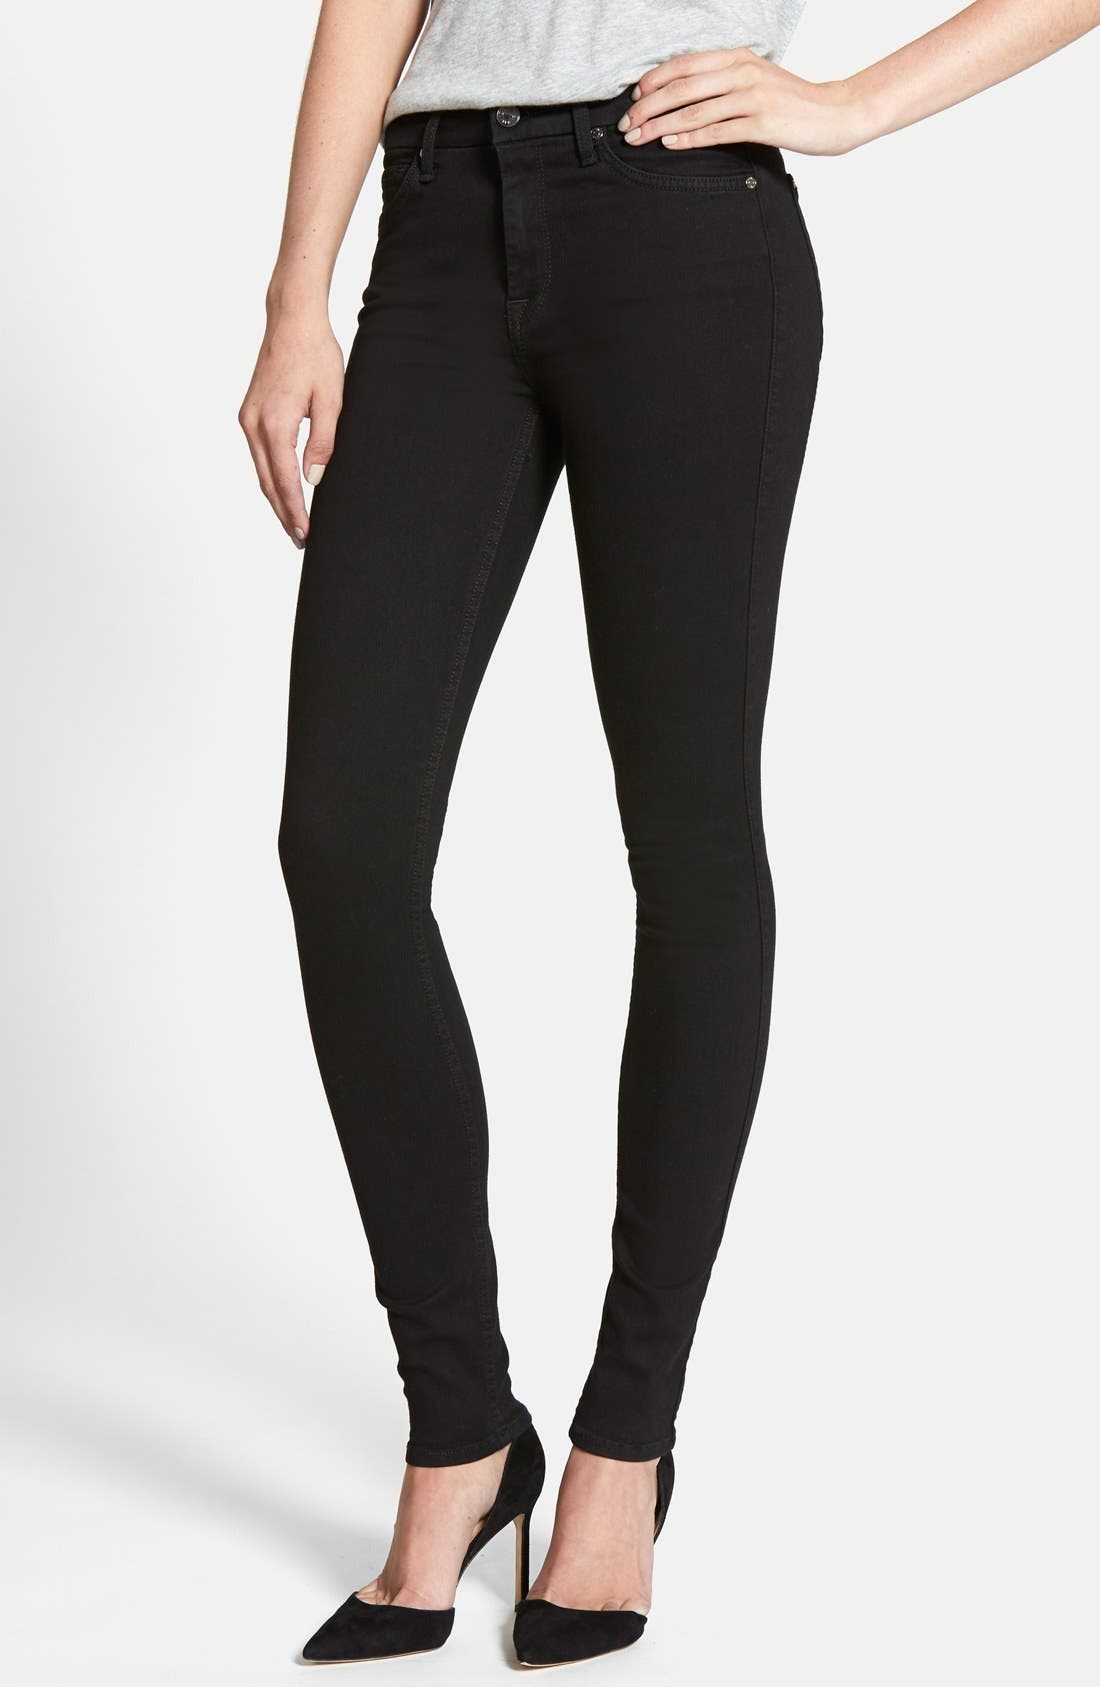 'Slim Illusion Luxe' High Waist Skinny Jeans,                             Main thumbnail 1, color,                             004